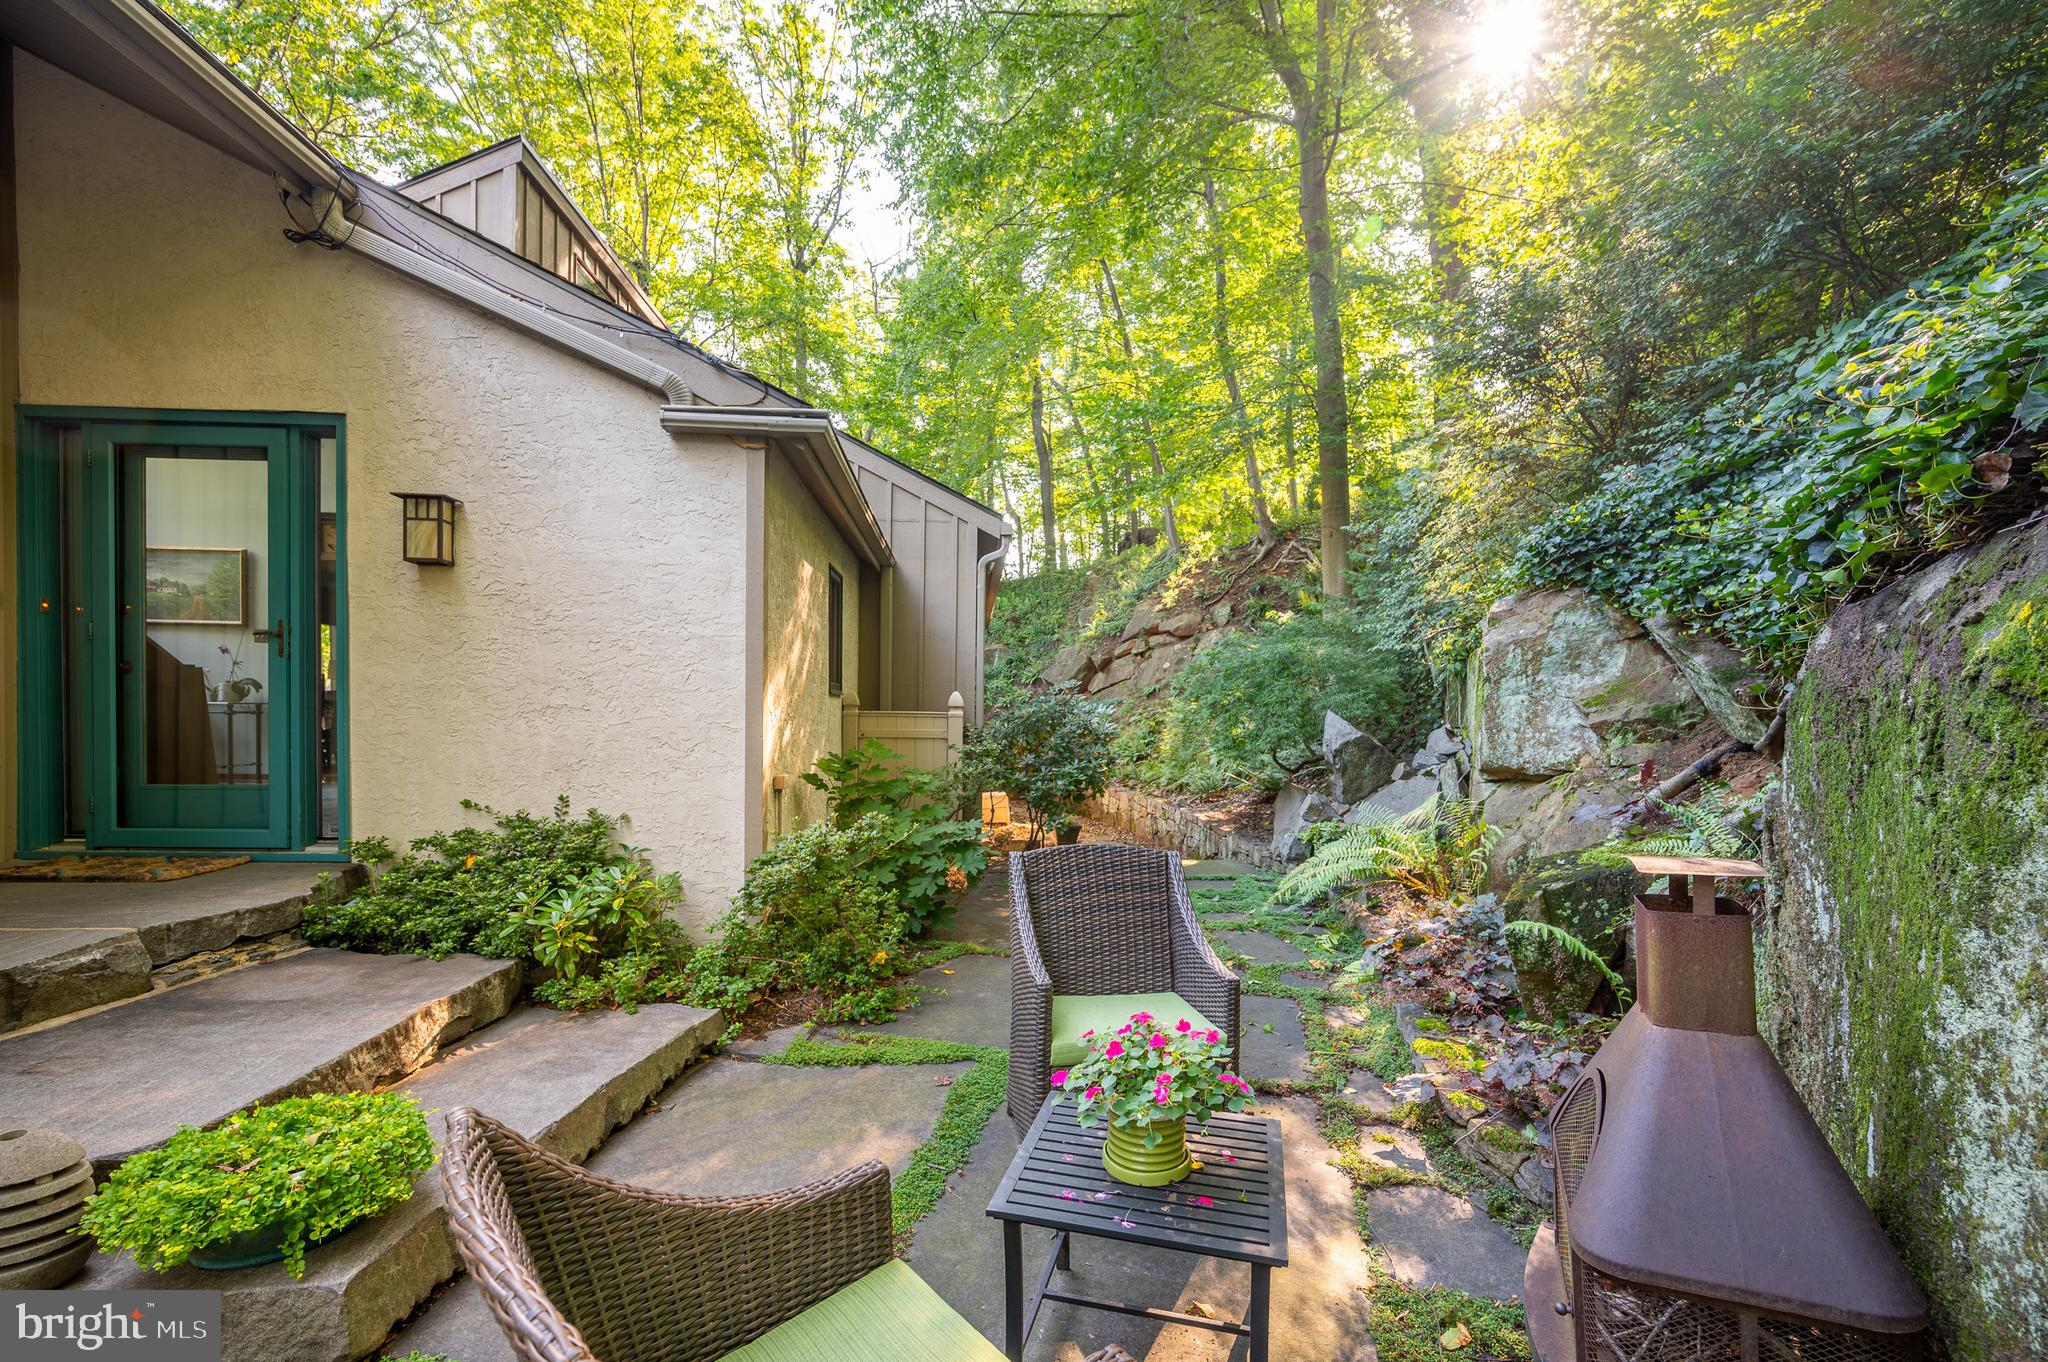 Nestled above the Brandywine River behind the Delaware Art Museum, this home is one of a kind. Set in the natural landscape of the area, this contemporary home is welcoming to all! After enjoying the water feature and sitting area at the entrance, step up onto the Brandywine blue rock stone steps to enter the spacious and bright foyer with a Vermont slate floor. With cathedral ceilings, the main floor features a living room with three sets of sliding glass doors, a fireplace with a slate surround, a dining area, a sitting area, a large powder room with a wall-to-wall marble countertop, and renovated kitchen. A large deck spans the back of the home and a lovely screened-in porch is located on the side of the home creating a relaxing, outdoor experience.  In the kitchen, enjoy the natural custom cherry cabinets crafted locally in N Wilmington,  Costa Esmeralda granite countertops, a tiger maple island top, heart pine floors, bookshelves, and banquette making it an eat-in kitchen. Preparing food in this kitchen is a pleasure with Wolf cooktop, Bosch dishwasher,  Wolf wall oven, Sharp microwave, Grohe faucet, Franke sink, and a Brisos stove vent. Step up a half flight into the expansive primary bedroom with three walk-in closets, natural views of the outside, and a renovated bathroom with granite countertops, dual vanity, walk-in shower with oversize tiles and two showerheads, and custom window plantation shutters.  Move to the lower level to find two bedrooms, one with a walk-in cedar closet, a renovated full bath with a walk-in shower, and a foyer with a laundry closet with a utility sink. A truly unique feature of this property is the Yurt! Walk up the stone steps using the hand-forged railing to a Yurt that has a skylight, HVAC, a deck, and a view of Alapocas Run State Park.  What a great space for an office, yoga studio, game room, music studio, or teen hangout! This home has amazing storage with a walk-in closet on the main floor, a partial unfinished area on the 